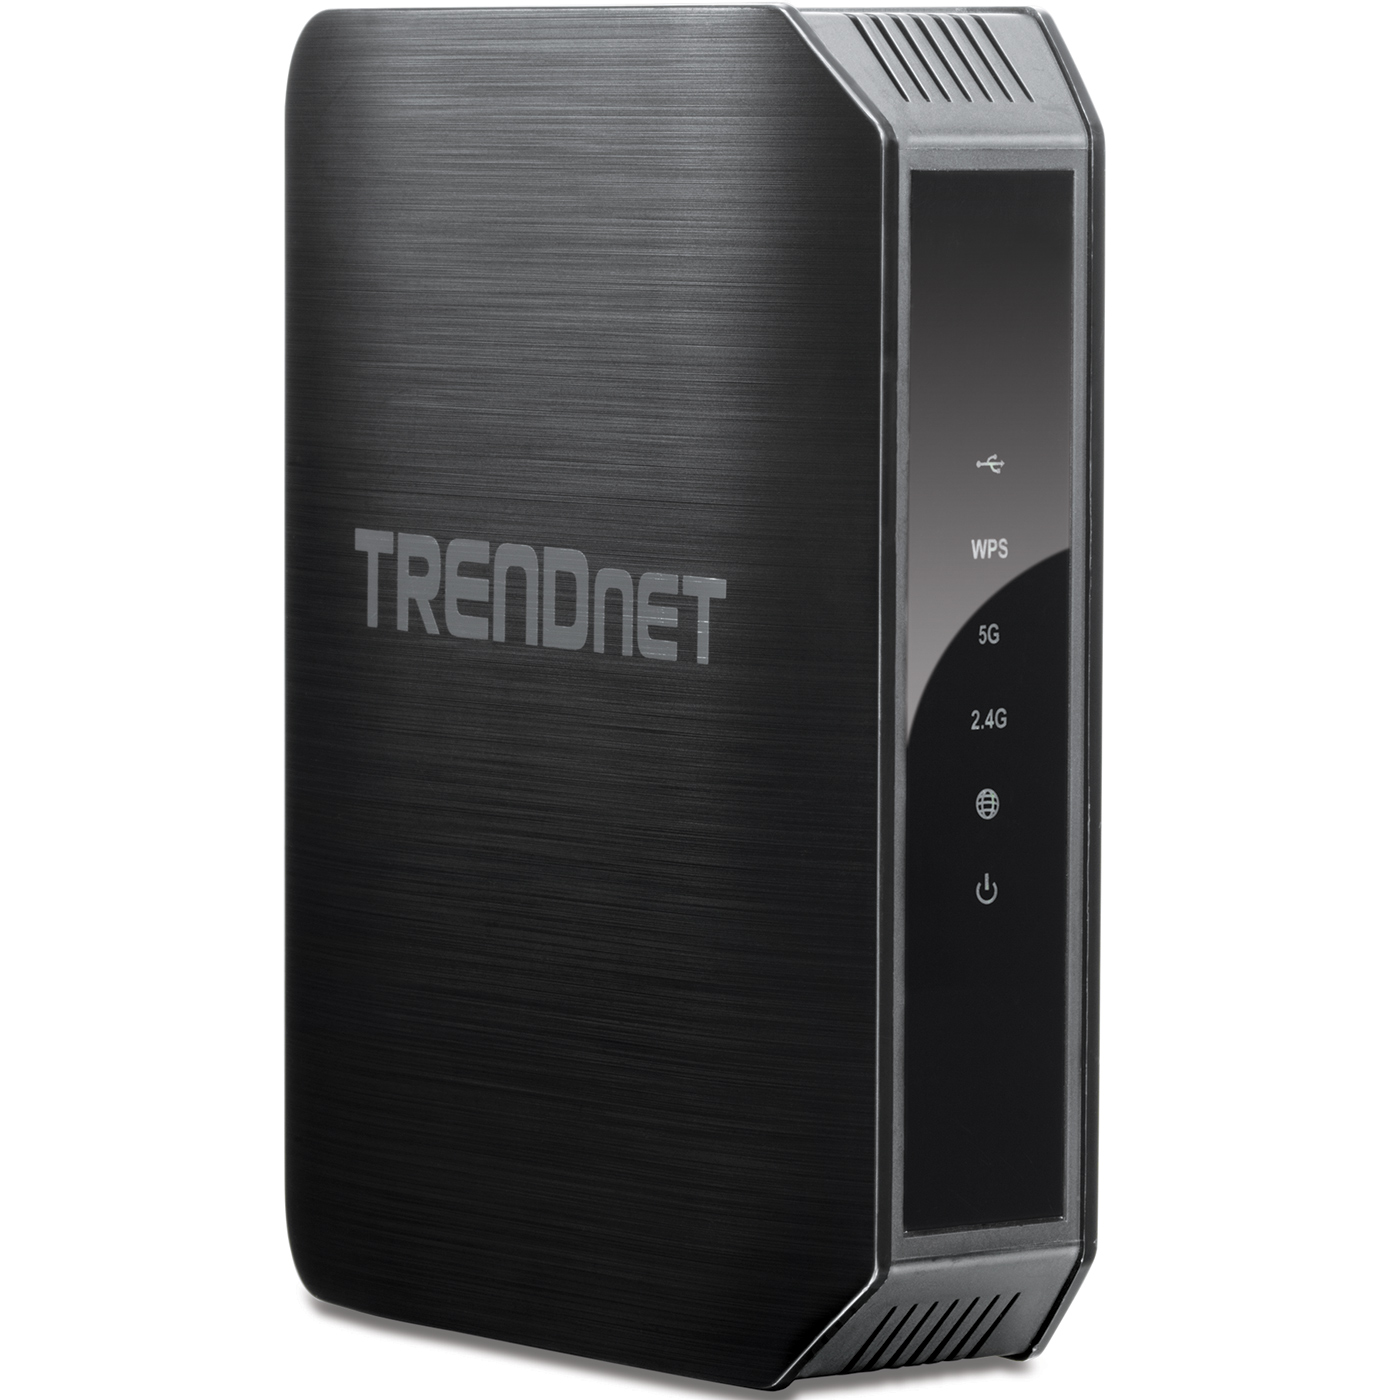 trendnet tew 813dru modem routeur trendnet sur ldlc. Black Bedroom Furniture Sets. Home Design Ideas